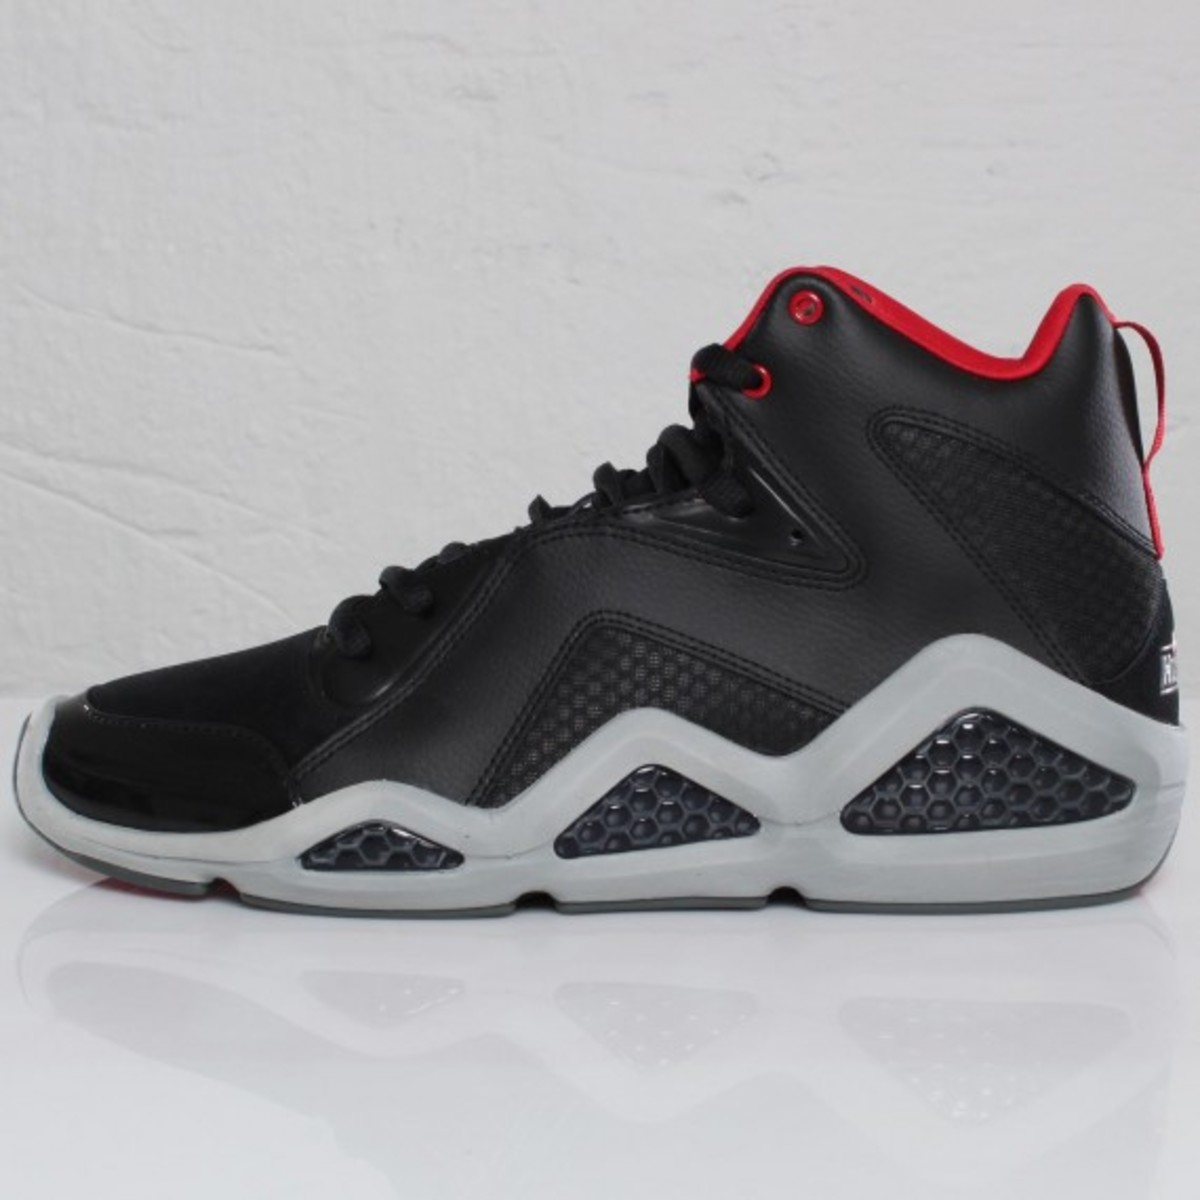 reebok-kamikaze-iii-mid-nc-black-tin-grey-excellent-red-04